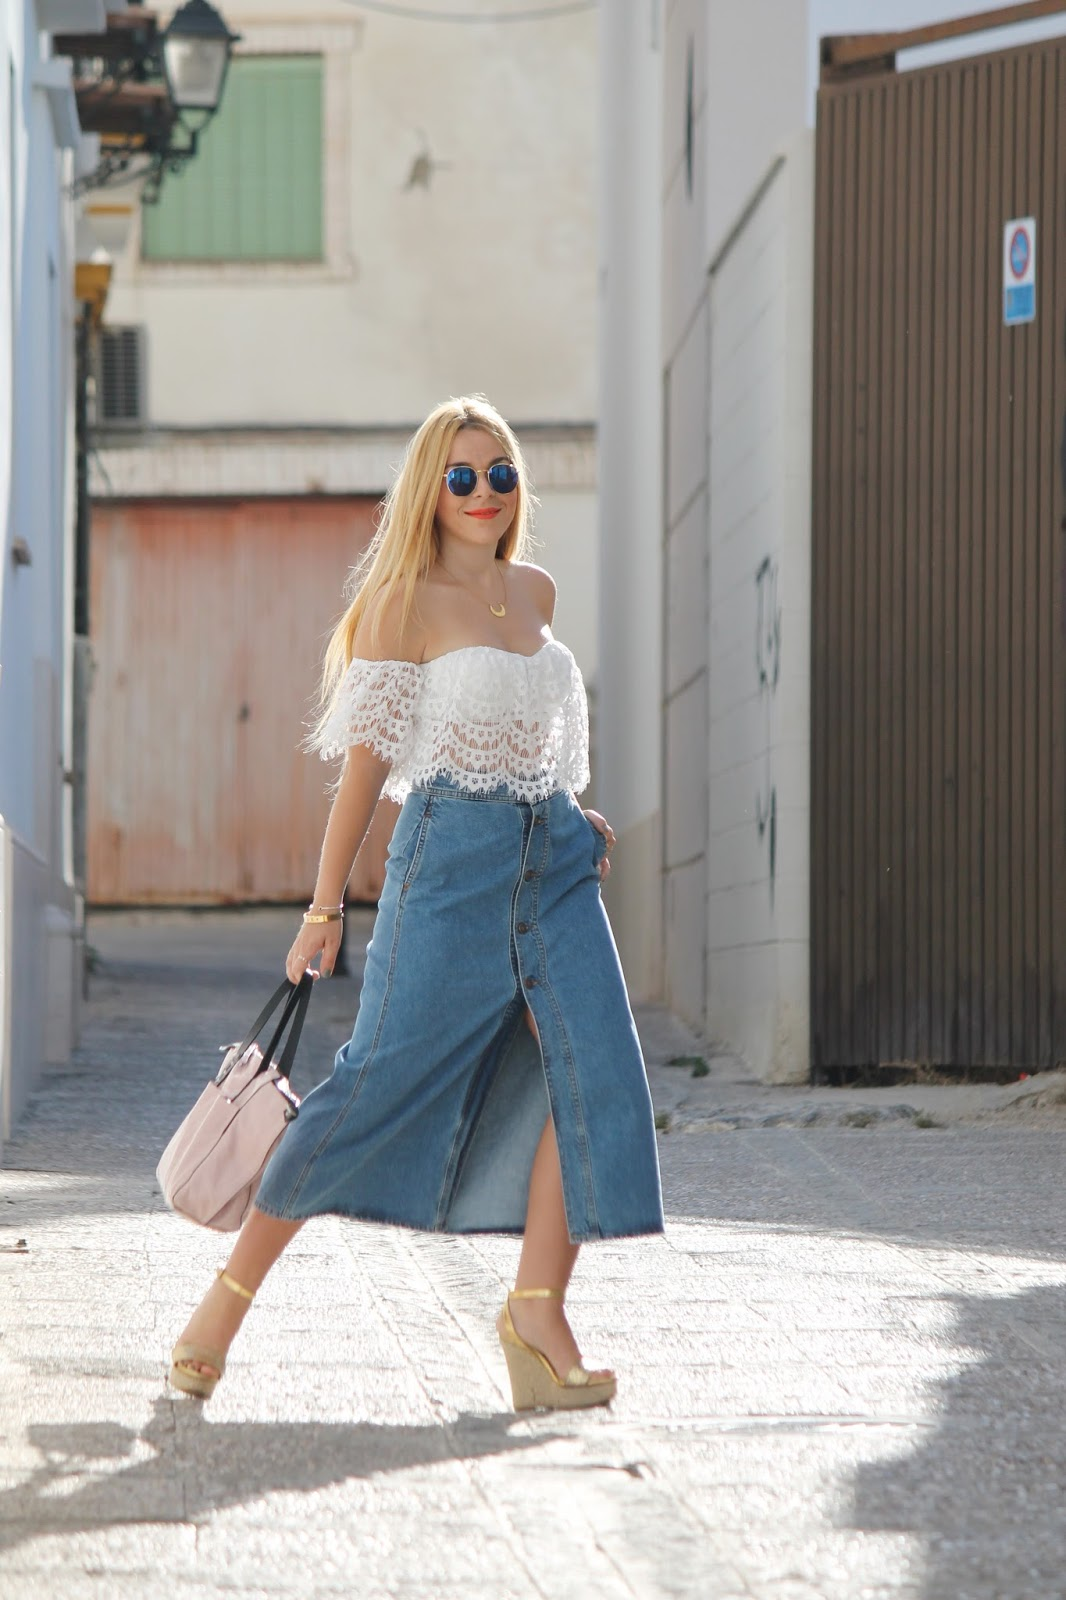 off the shoulder y las calles de ecija (16)